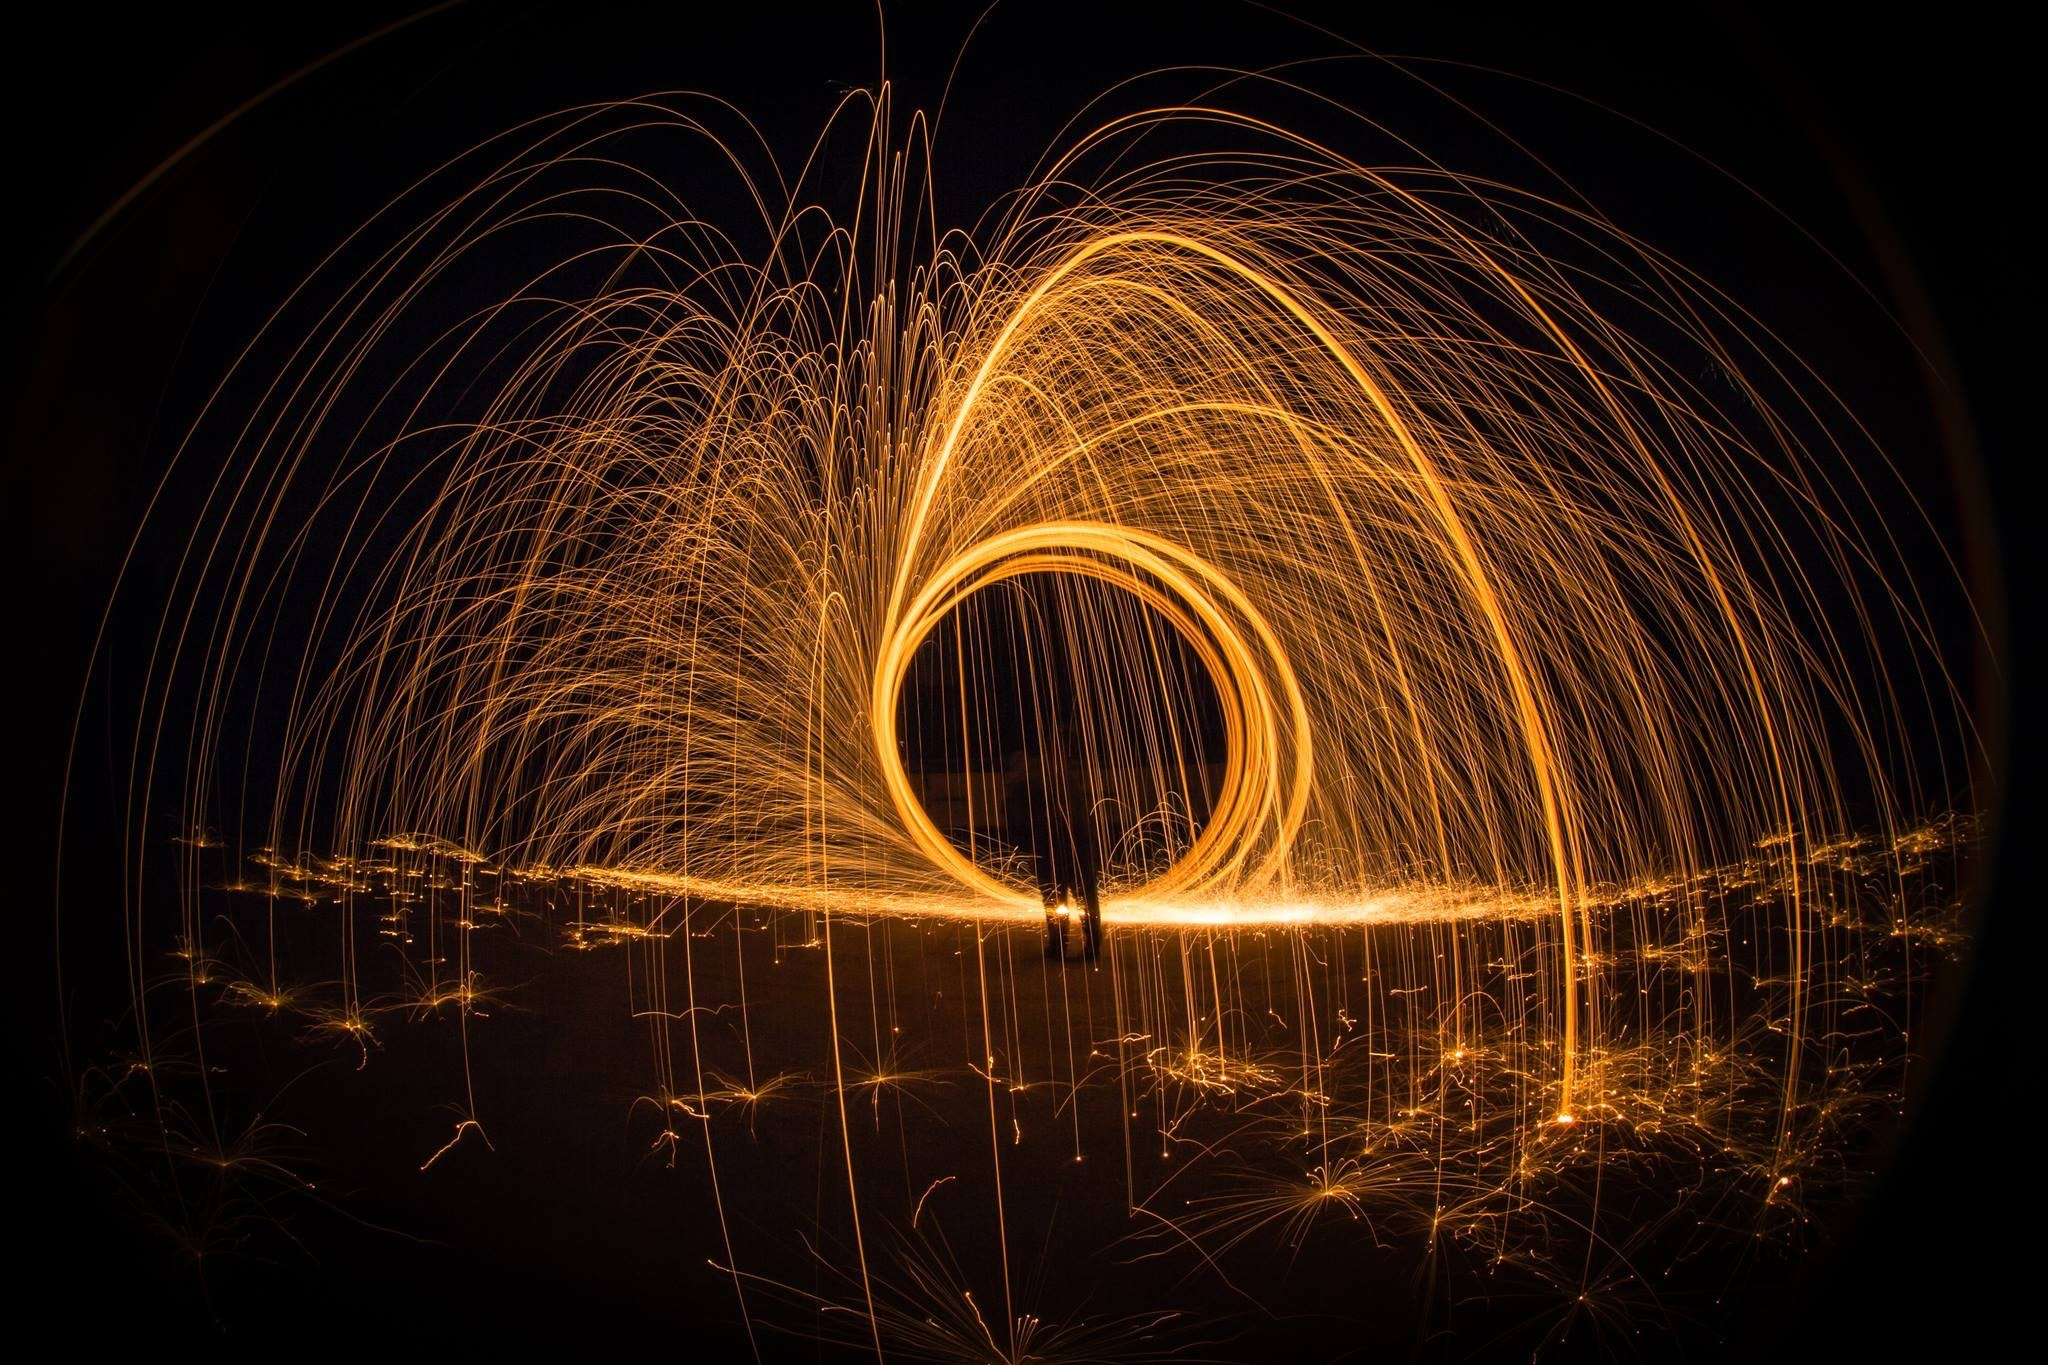 Light Painting at Night, Abstract, Lights, Technology, Romantic, HQ Photo